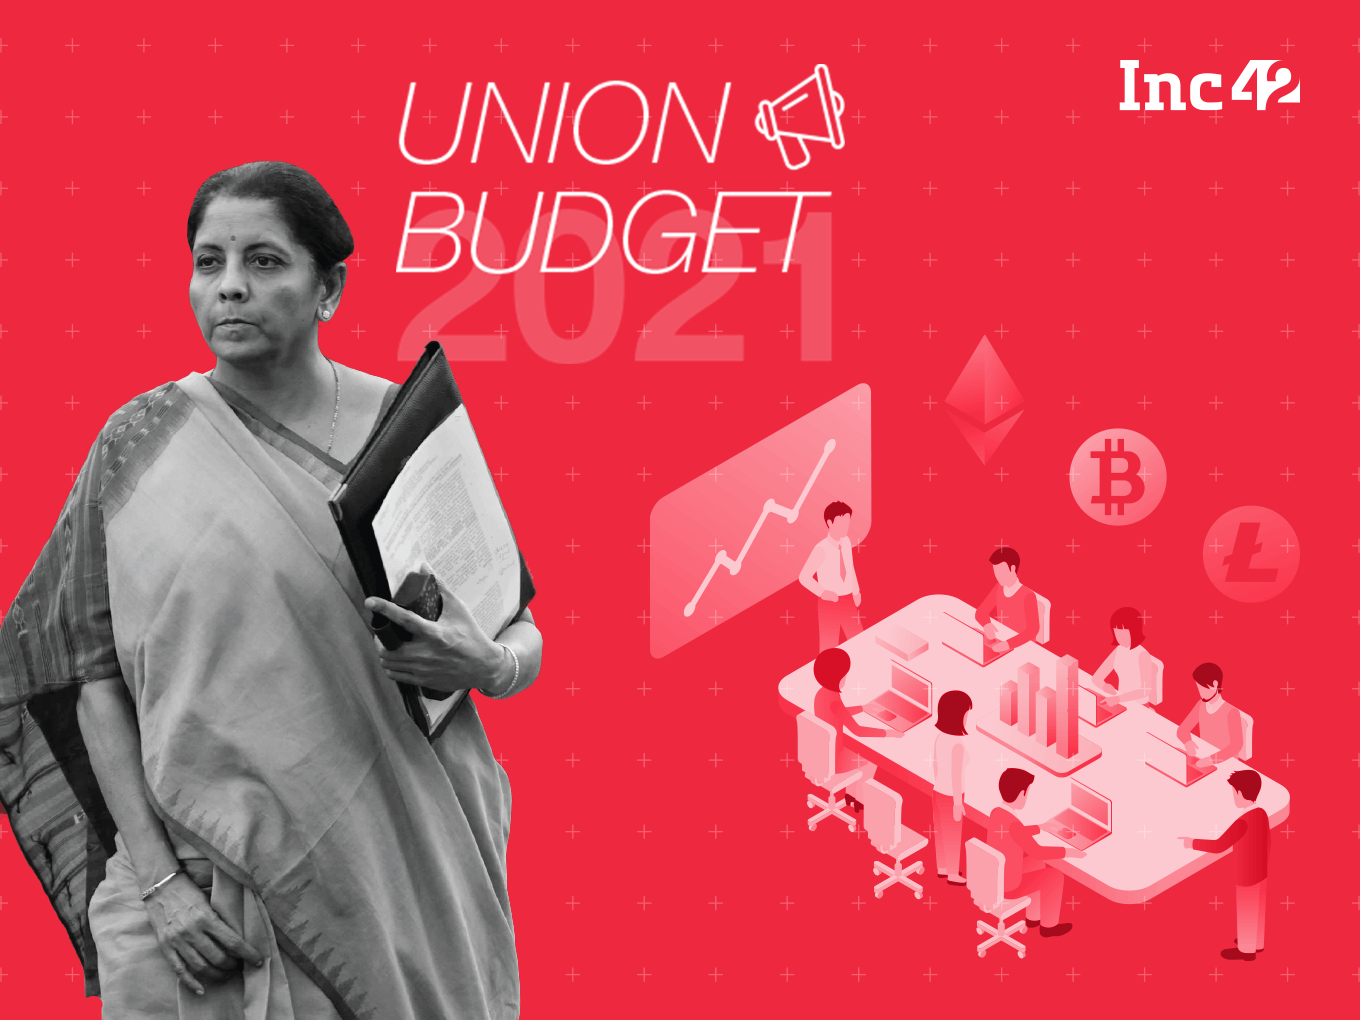 Union Budget 2021: Crypto Startups Seek Clarity On GST, Taxation On Earnings